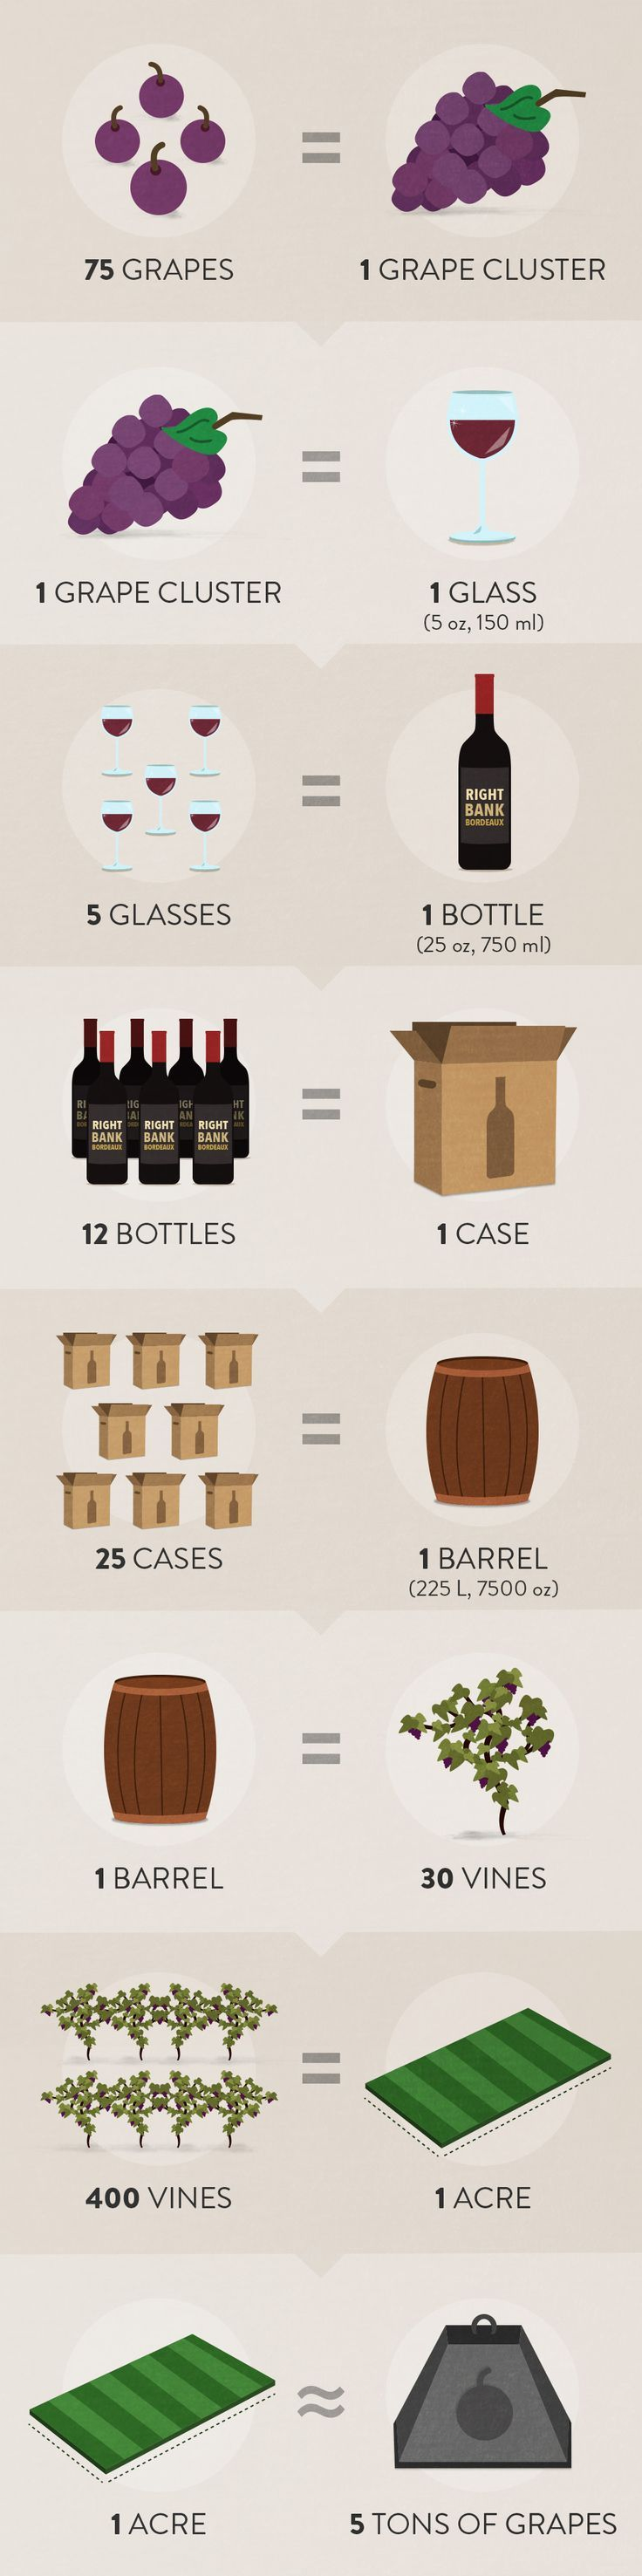 How Many Grapes To Make A Bottle Of Wine